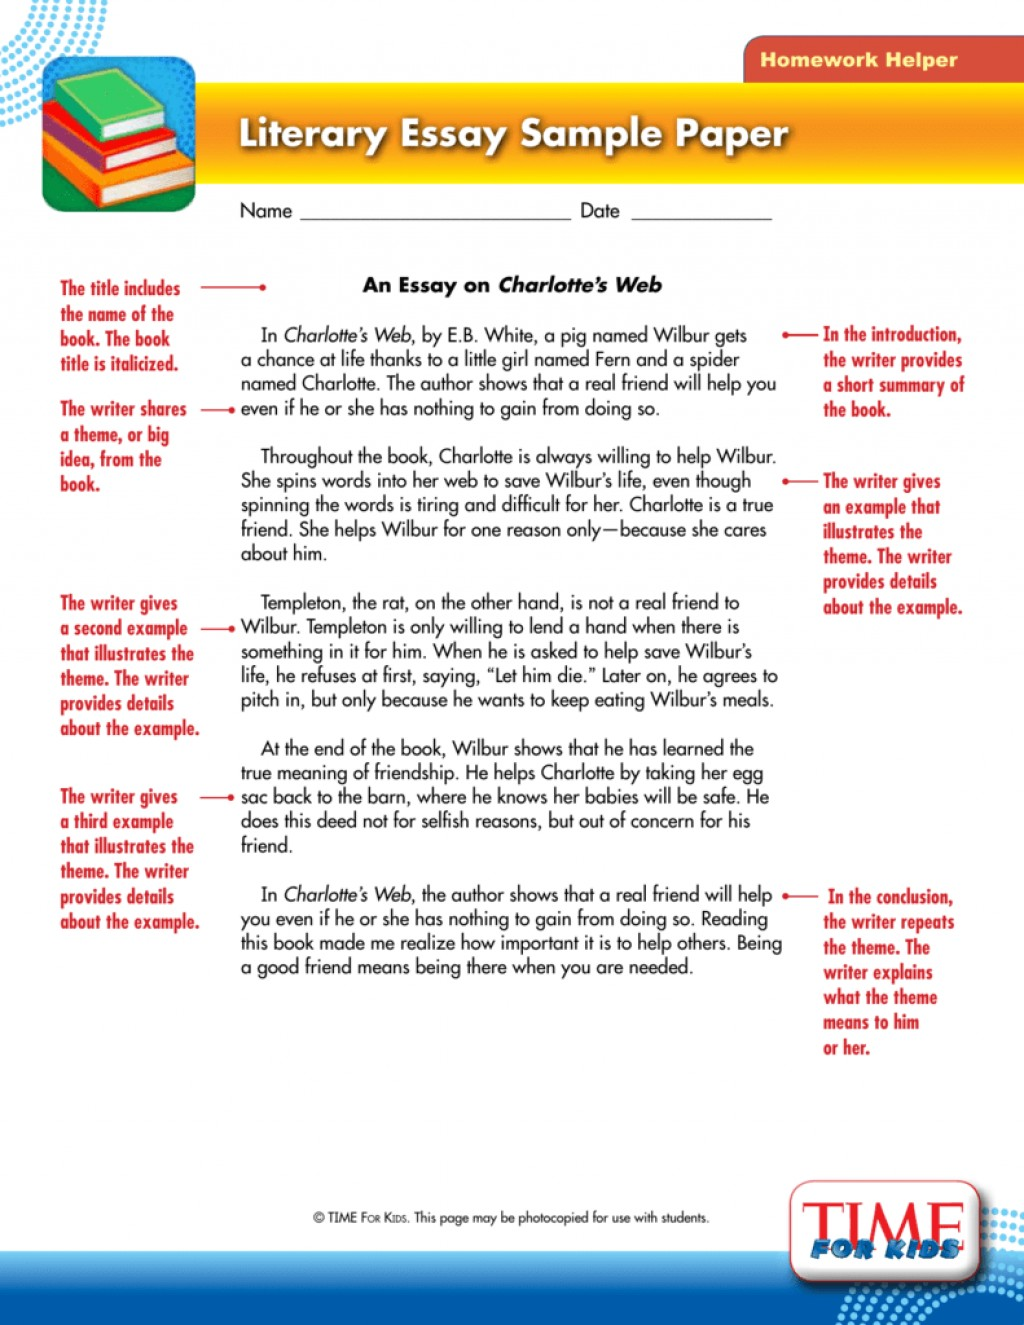 006 008656625 1 Essay Example Unique Literary Rubric 4th Grade Conclusion Writing A Large